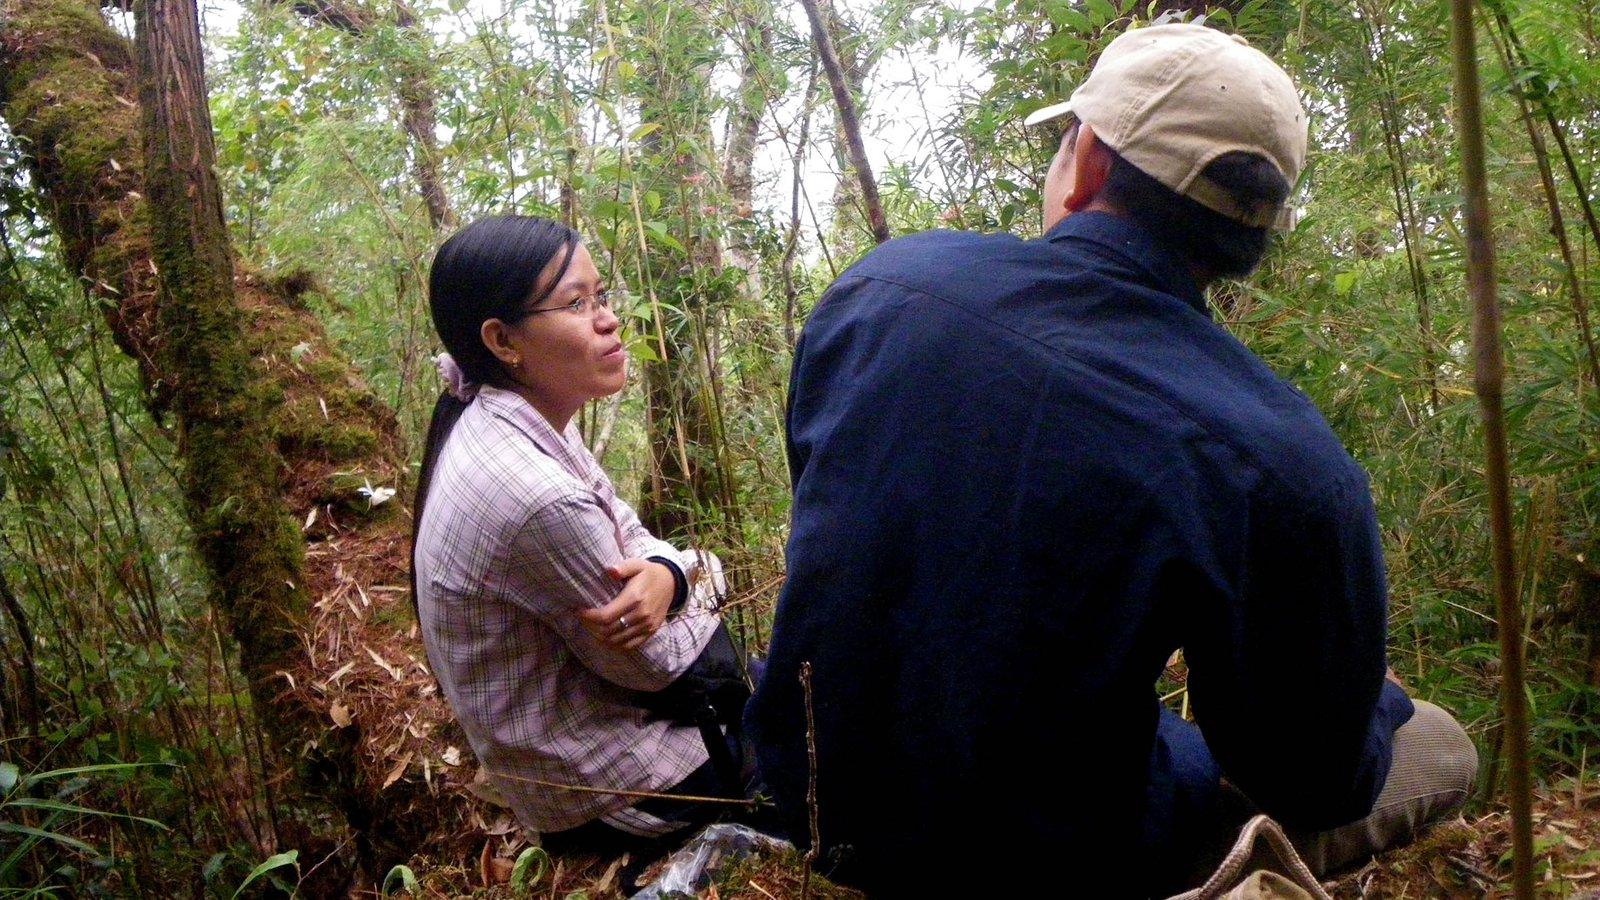 Duong Le and Vinh Dau in habitat of the Trieng Tree Frog (Gracixalus trieng), Vietnam.